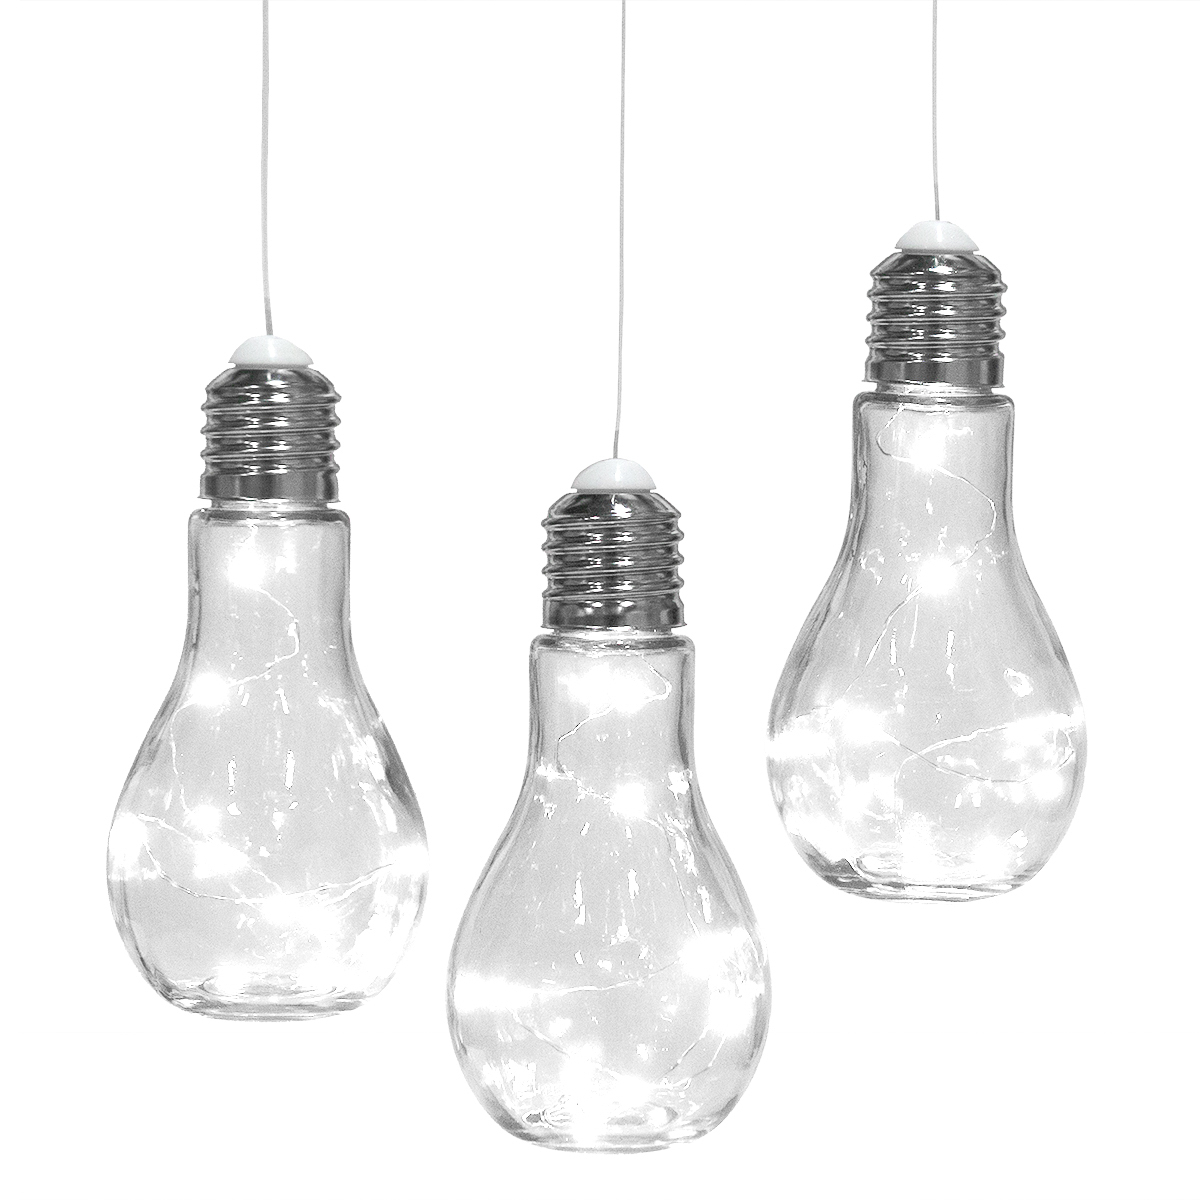 3 Hanging Bulb Shaped Glass Lanterns Outdoor Pendant Lamps